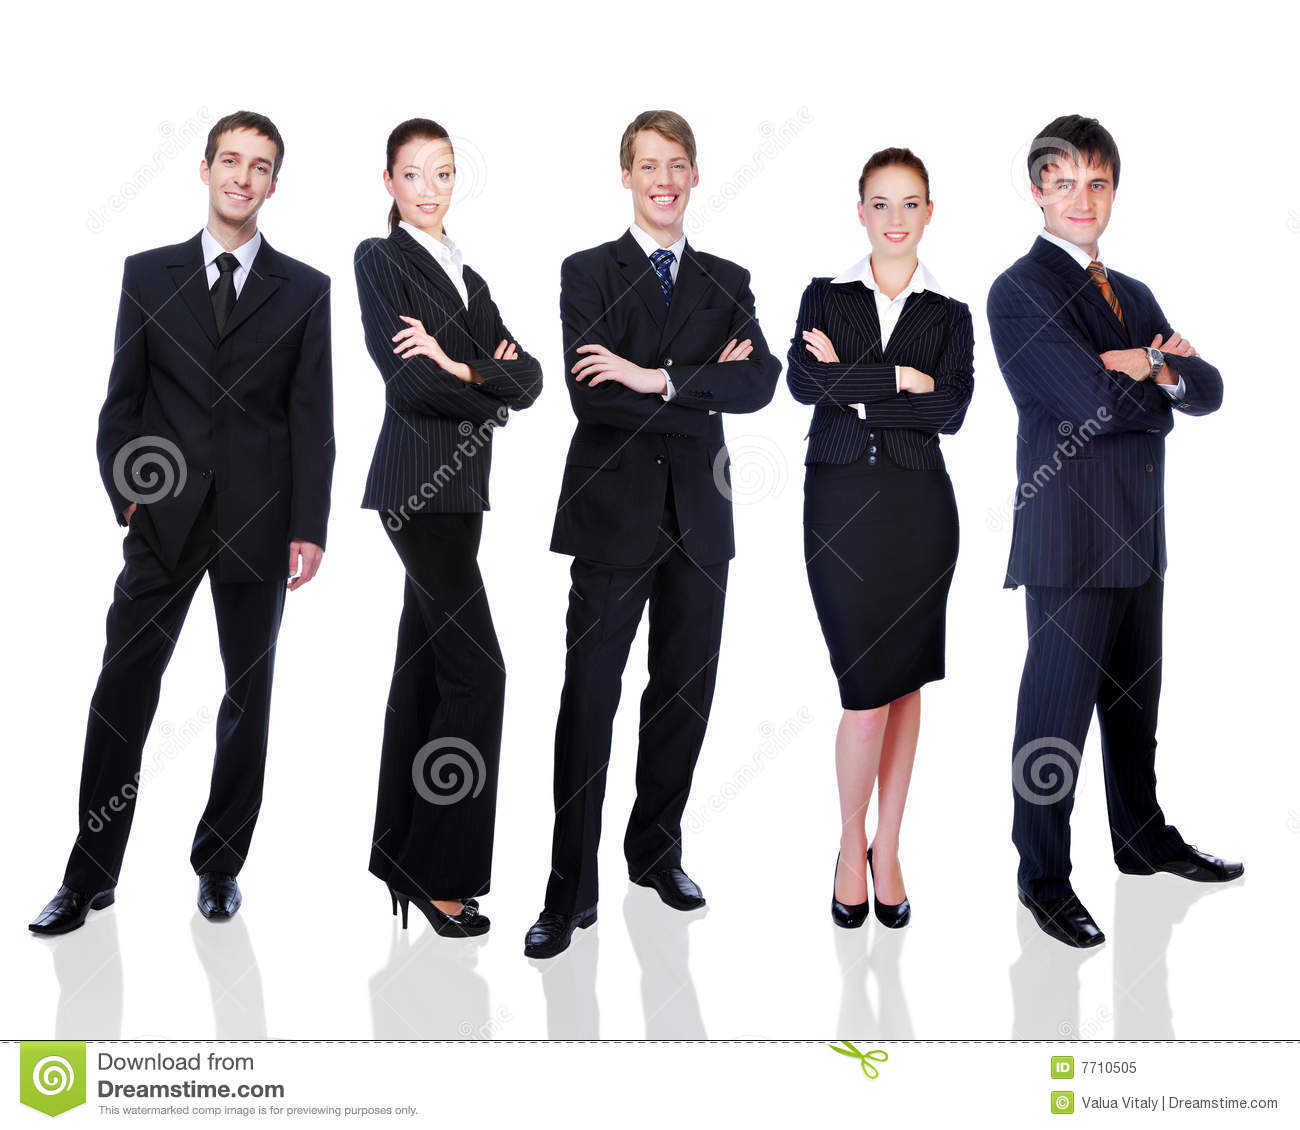 Group of successful smiling business people